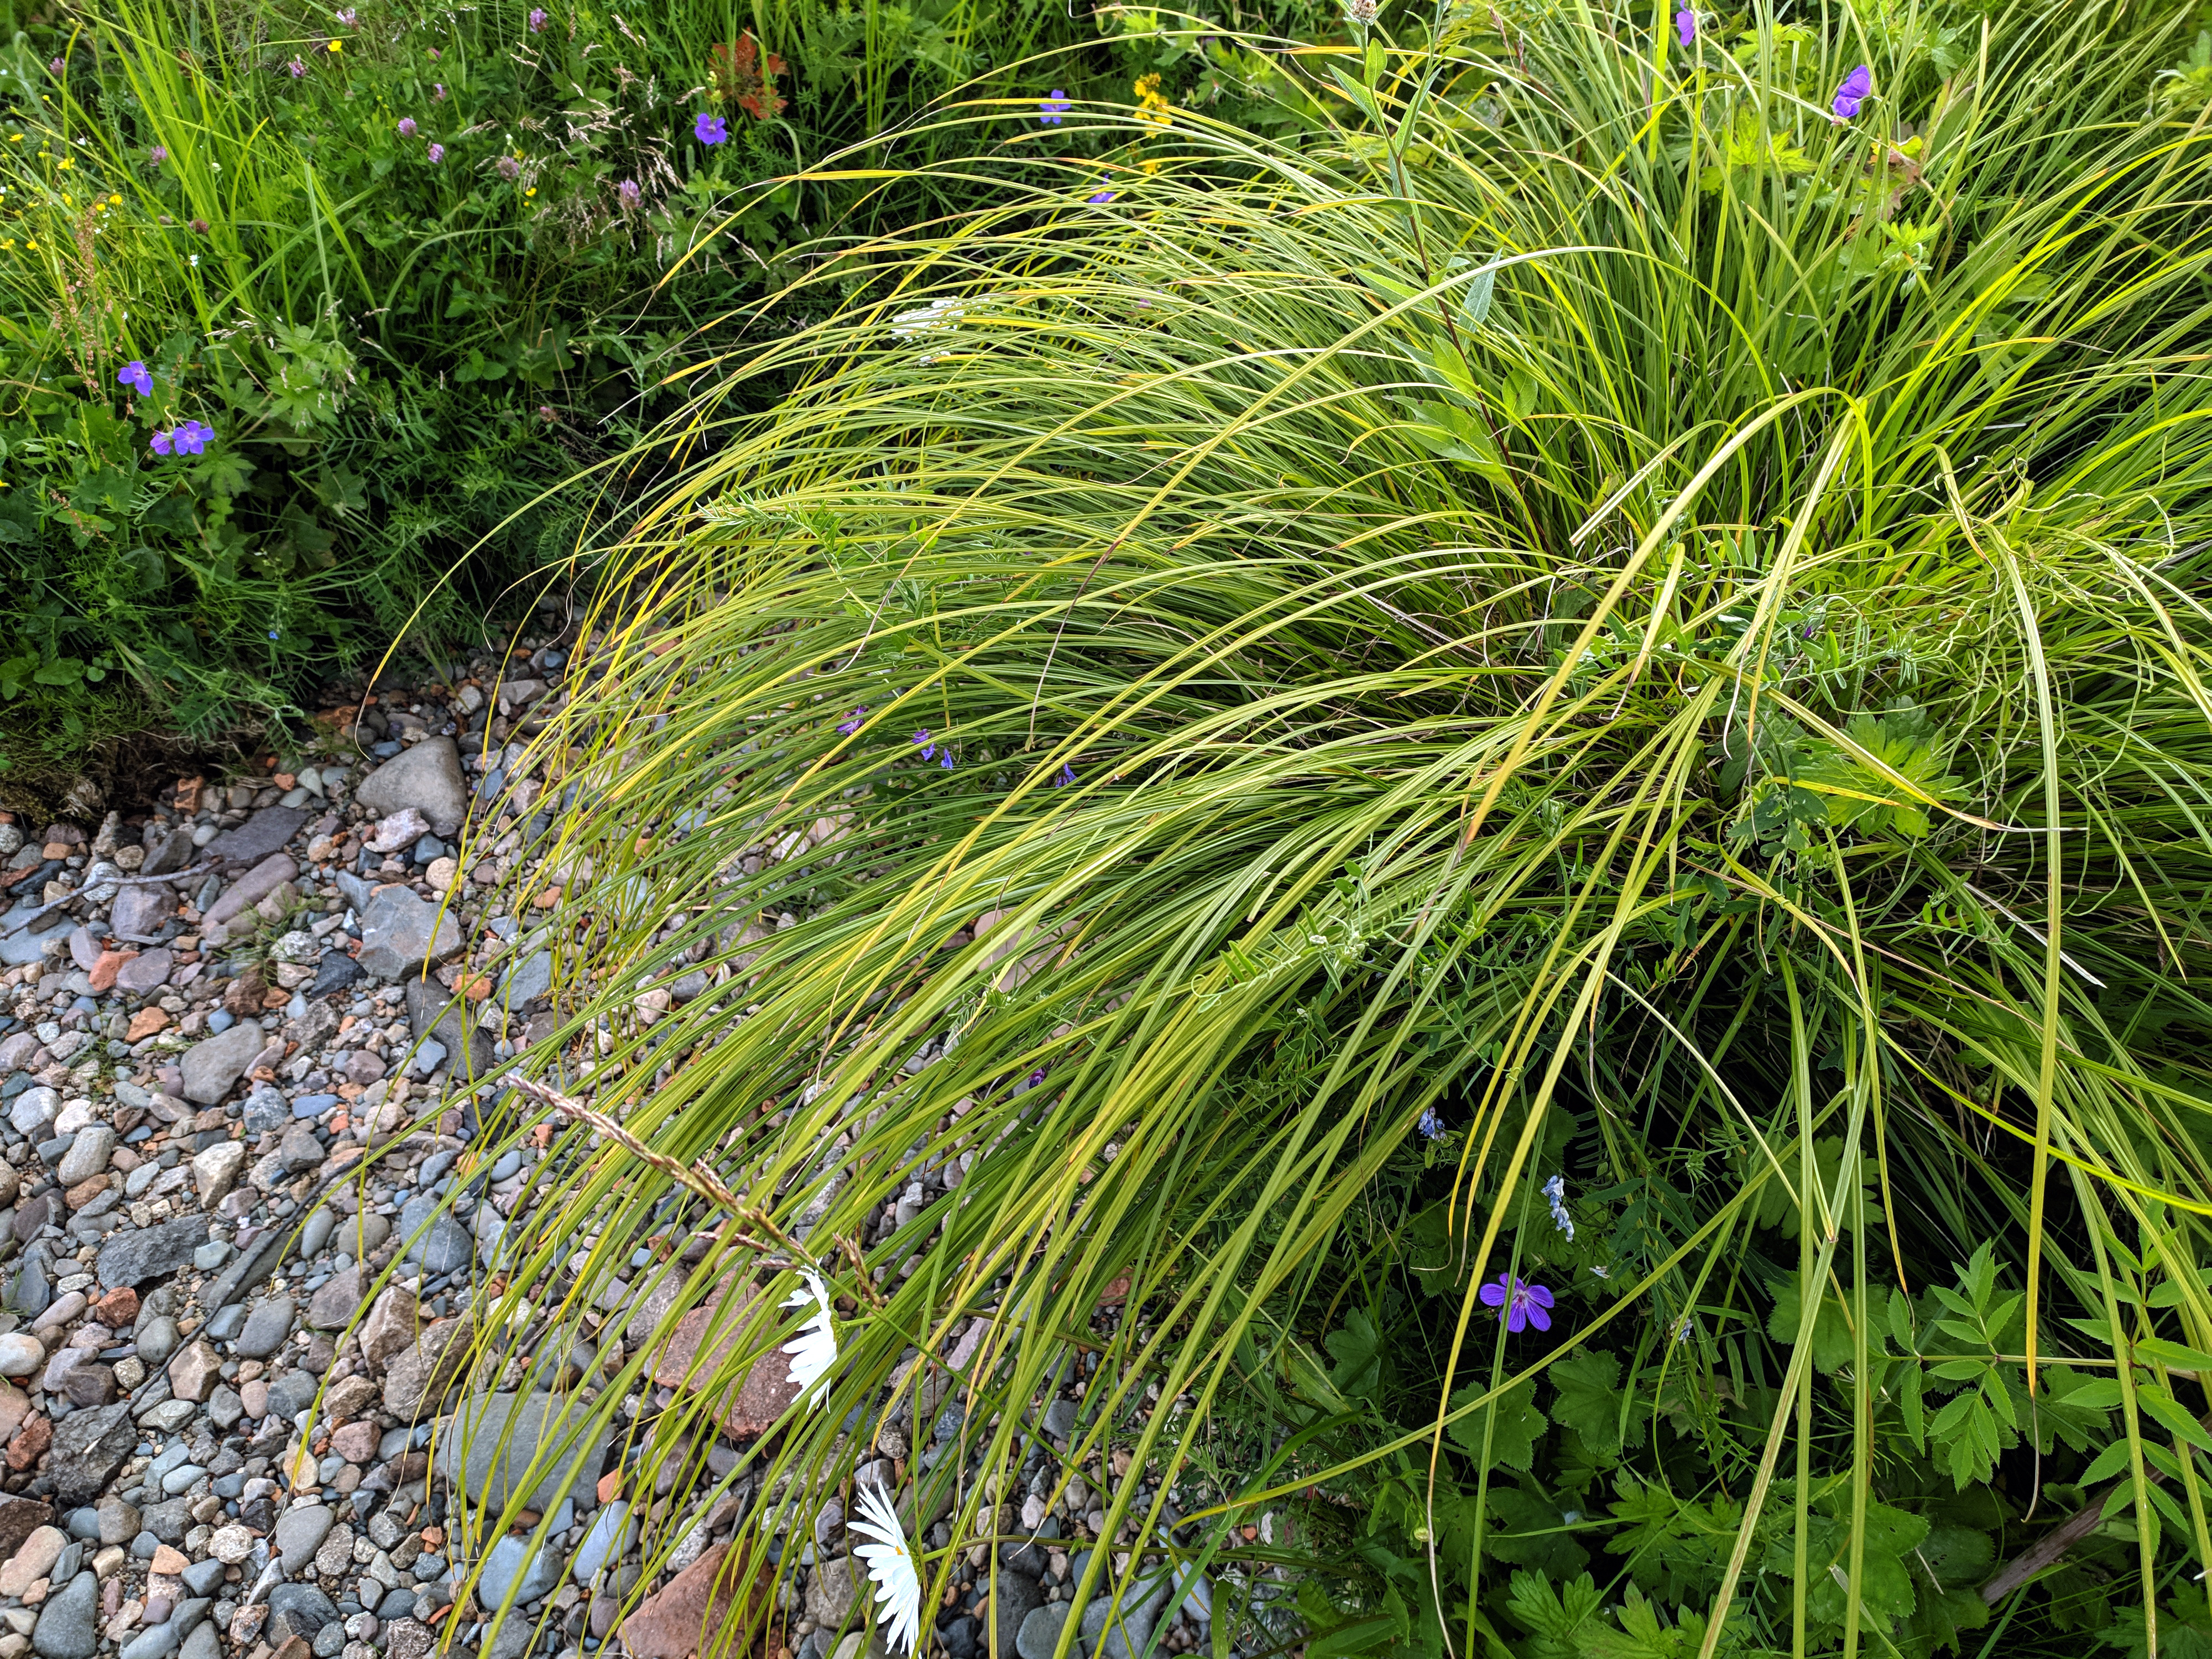 Thickets of river grass. sedge, grass by the river. Manifold of herbs and flowers near spring water among stones.